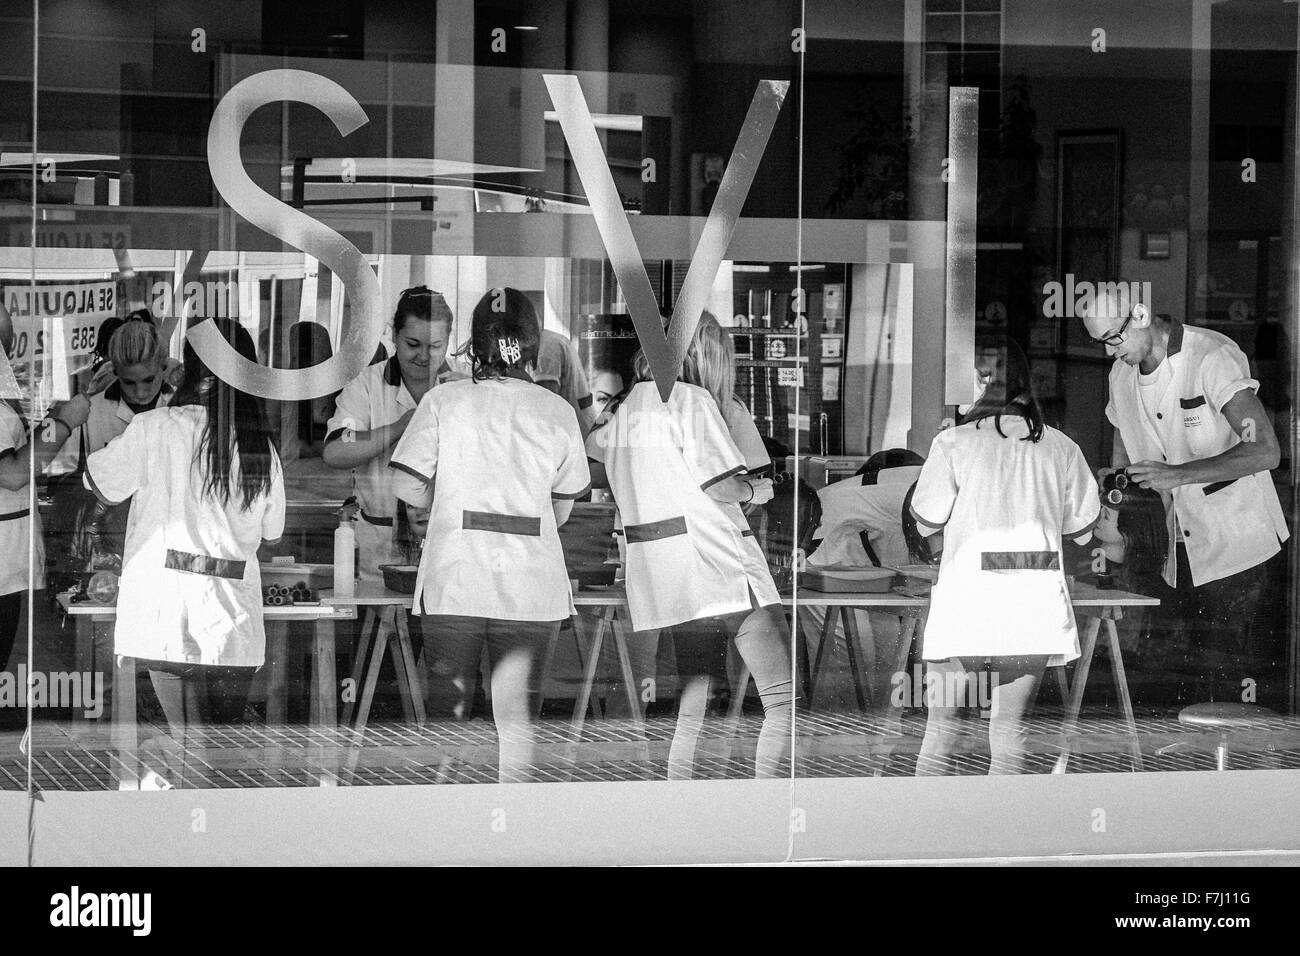 Benidorm, Spain, hairdressing college student trainees working  on clients viewed through large window - Stock Image